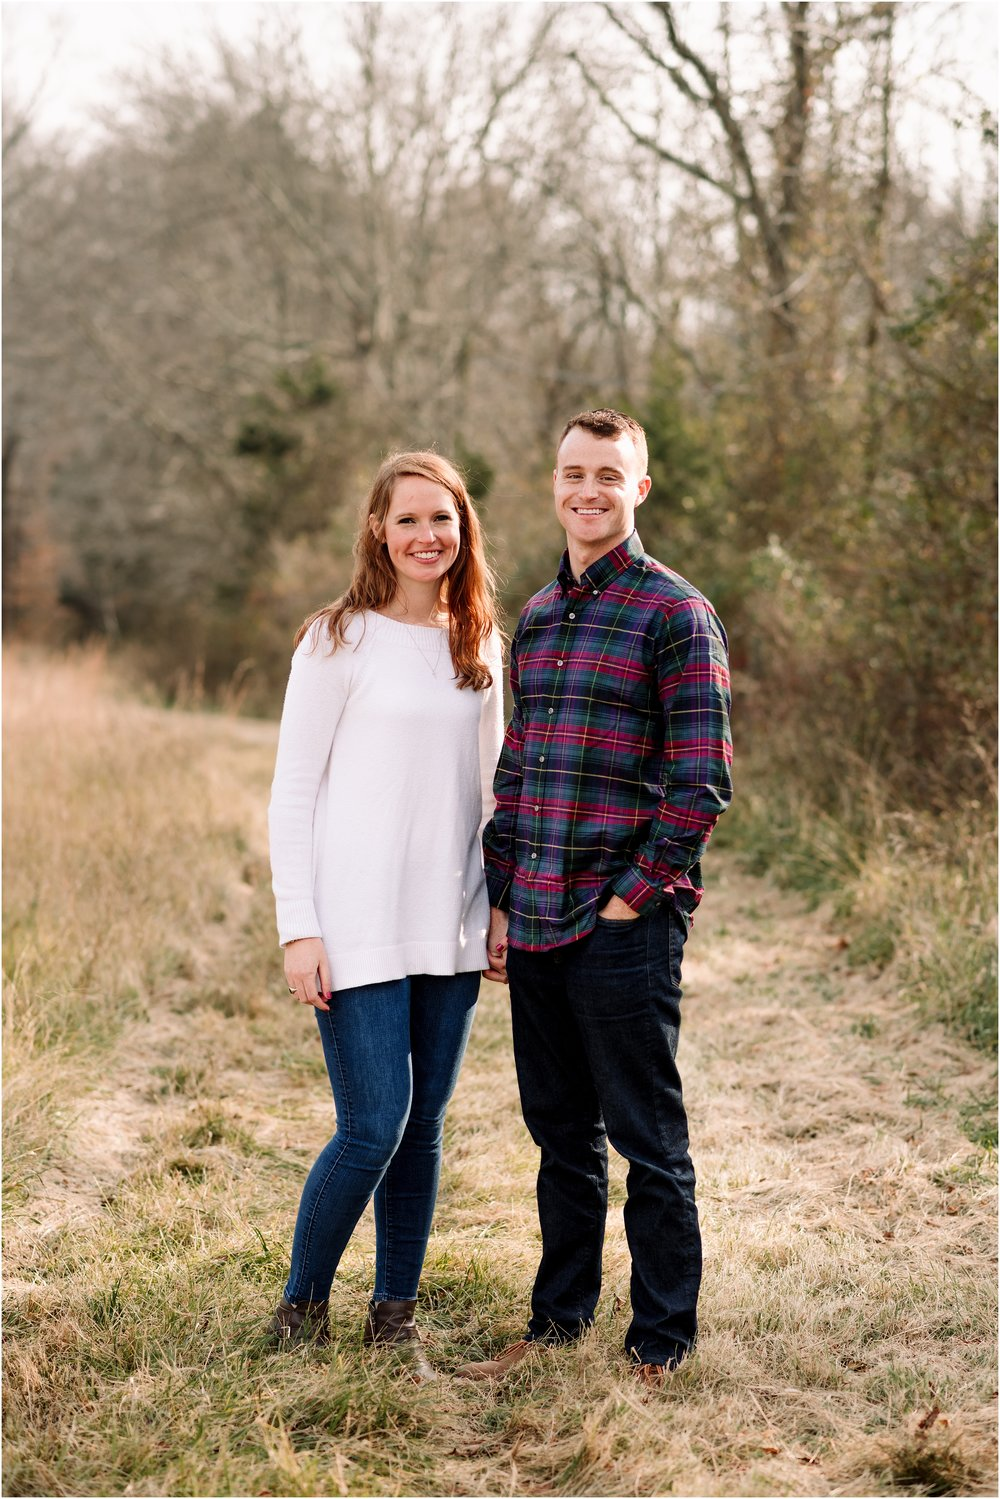 hannah leigh photography Annapolis MD Engagement Session_2403.jpg